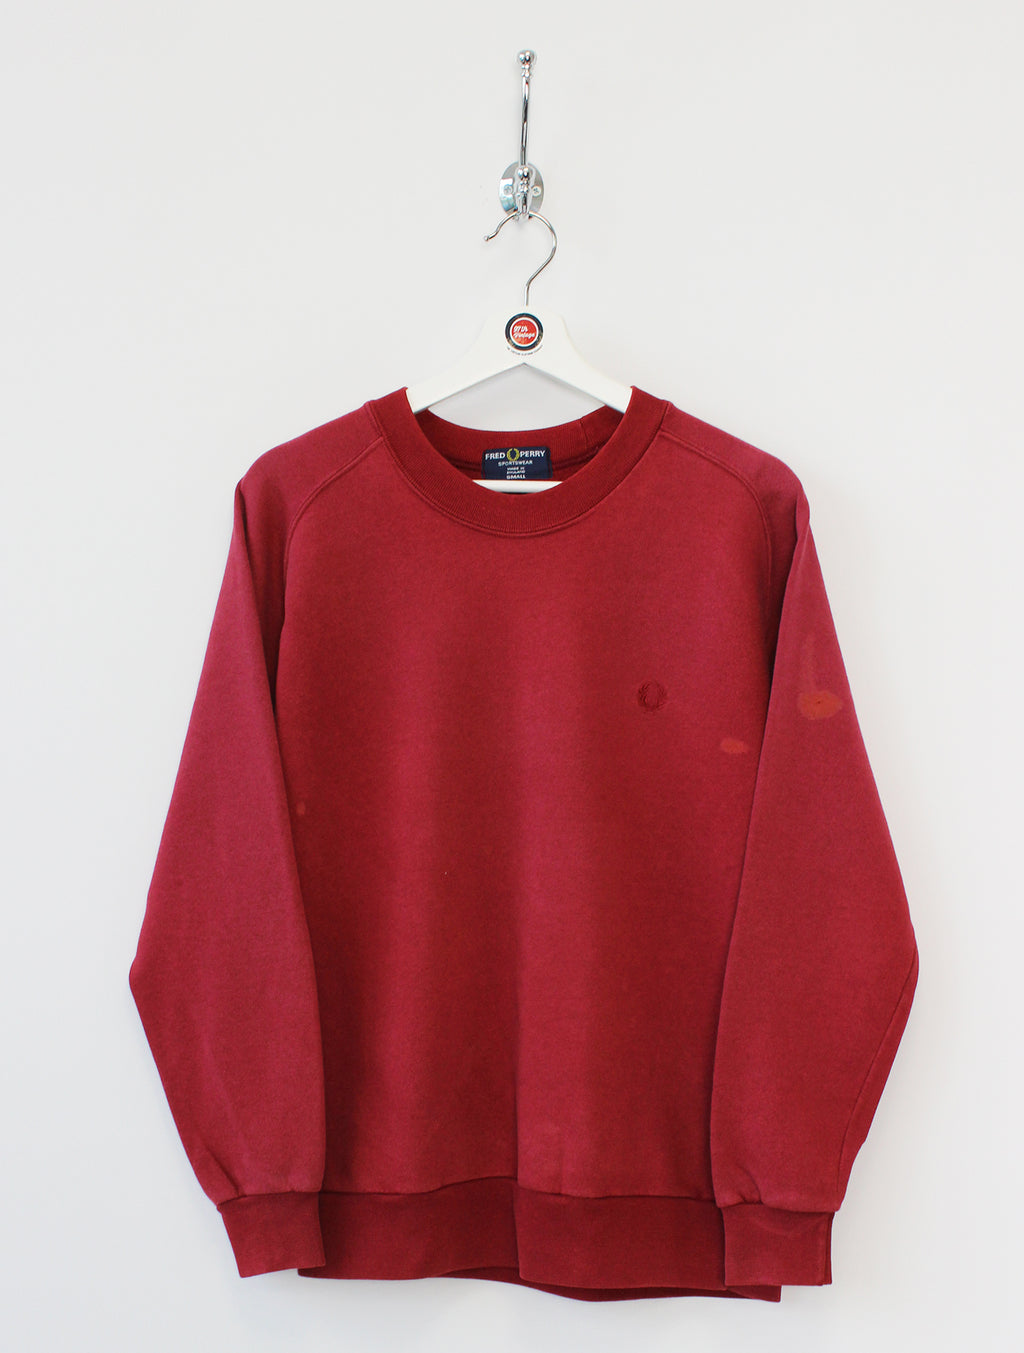 Fred Perry Sweatshirt (S)